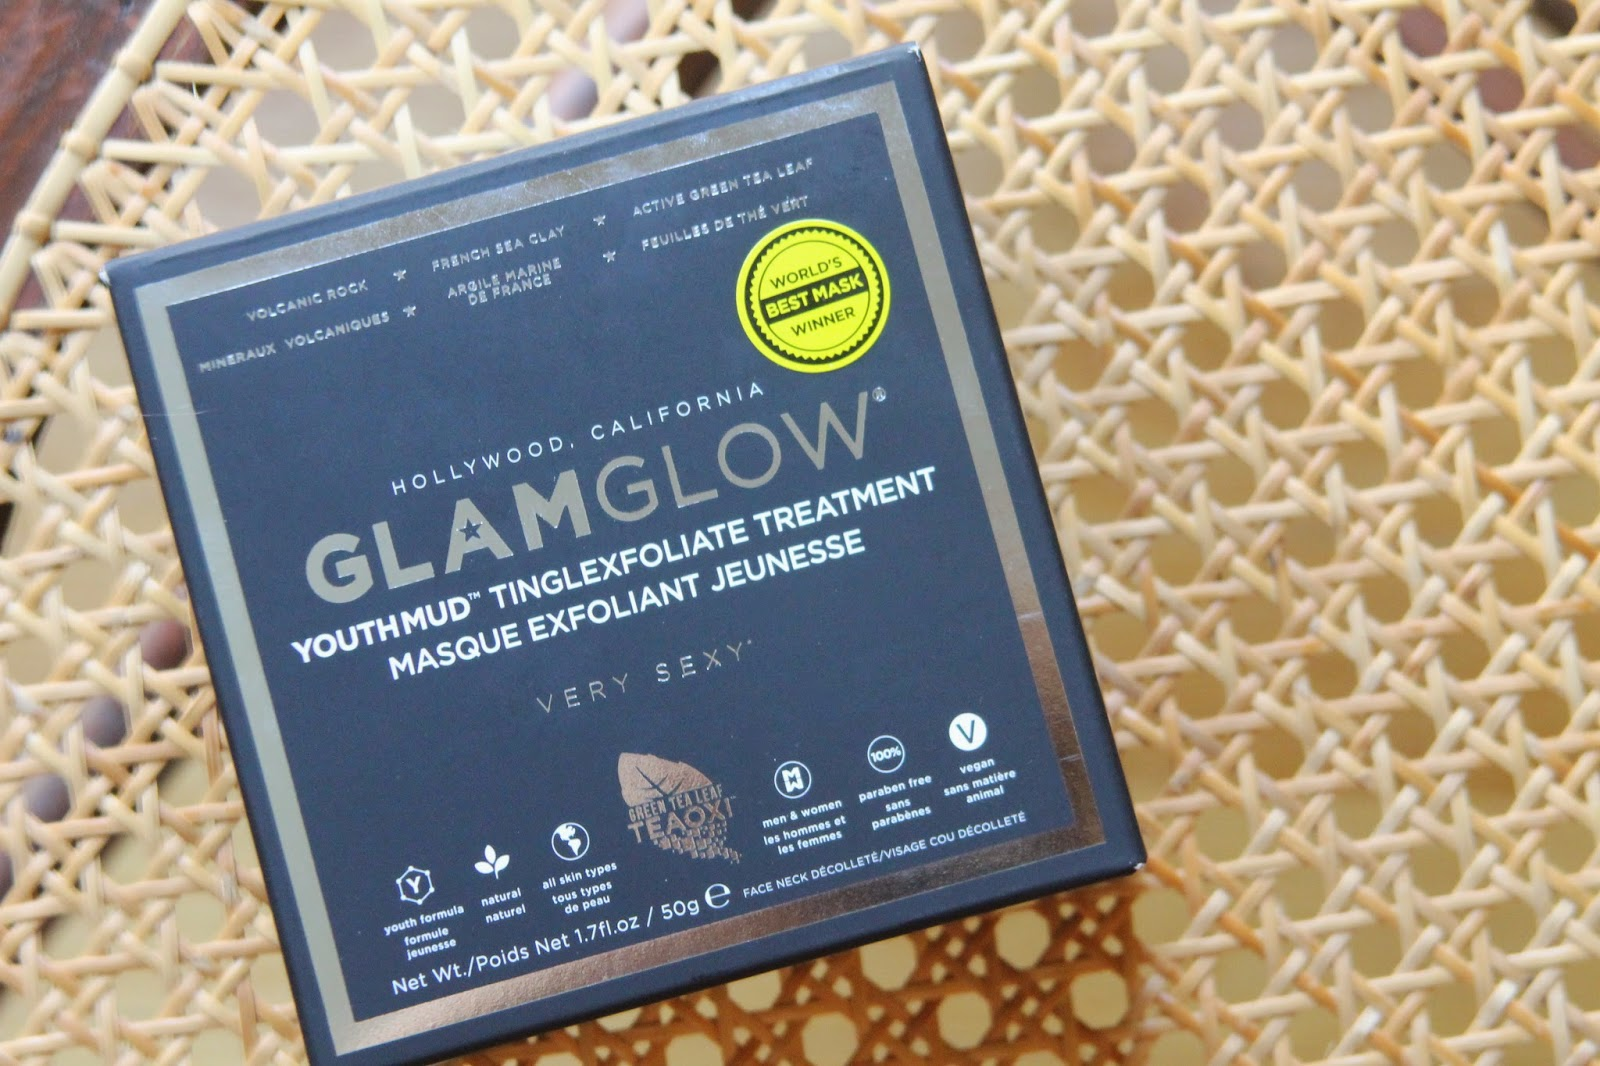 REVIEW: GLAMGLOW YOUTHMUD TINGLEXFOLIATE TREATMENT